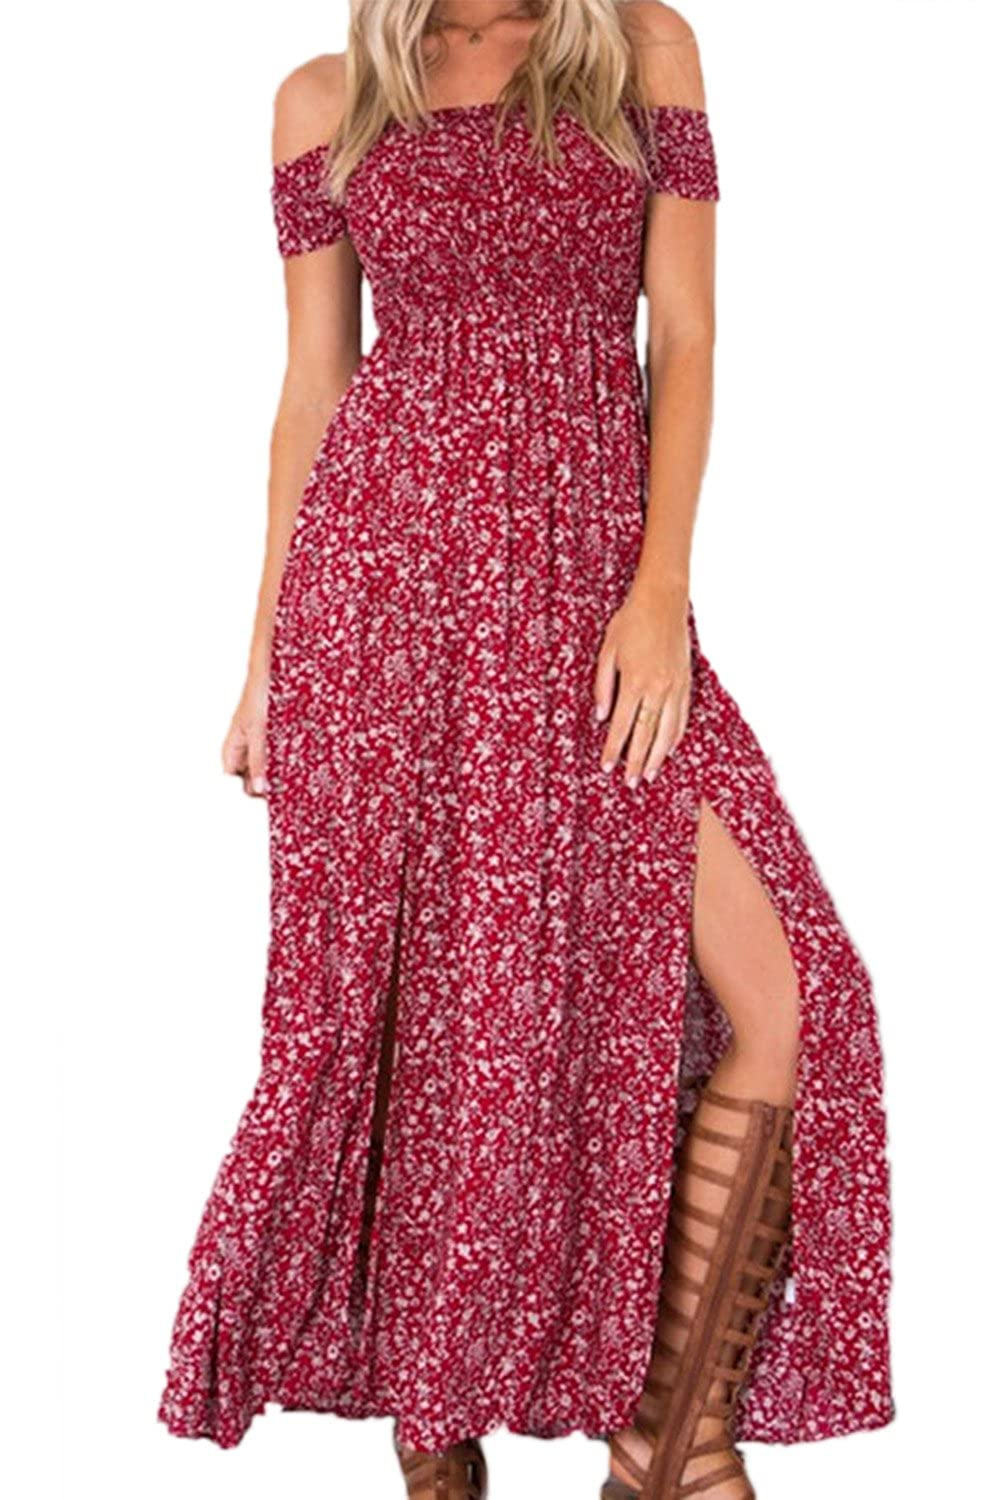 Women's Off The Shoulder Slit Floral Print Beach Bohemian Dresses Maxi Dresses CABXMY033